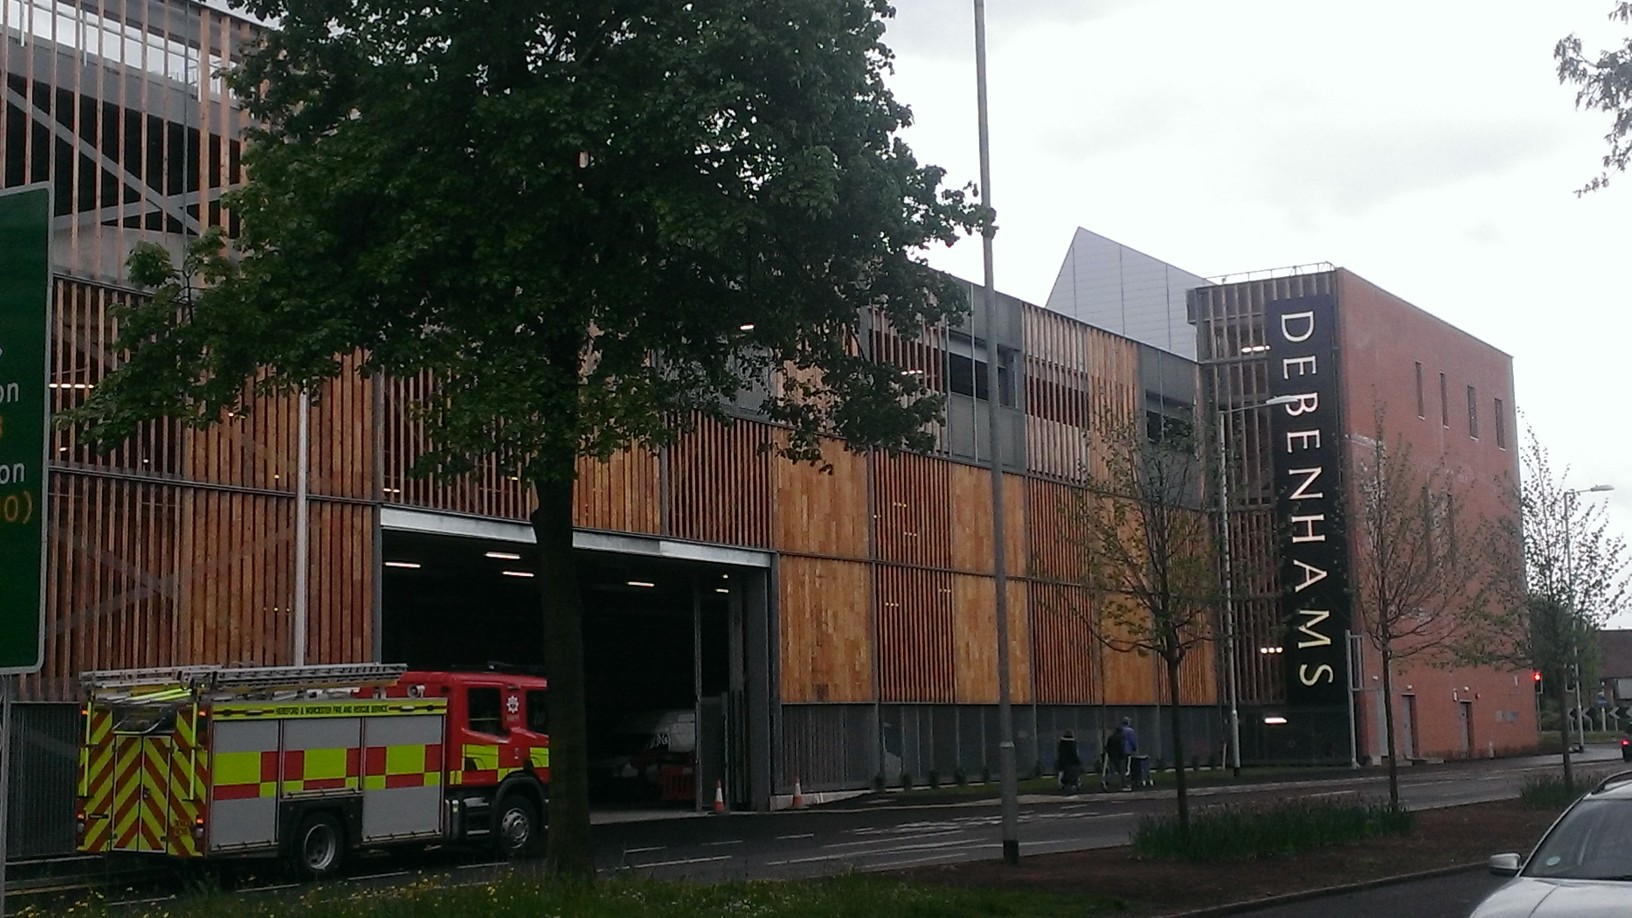 Fire service carry out safety checks at Hereford's Old Market site